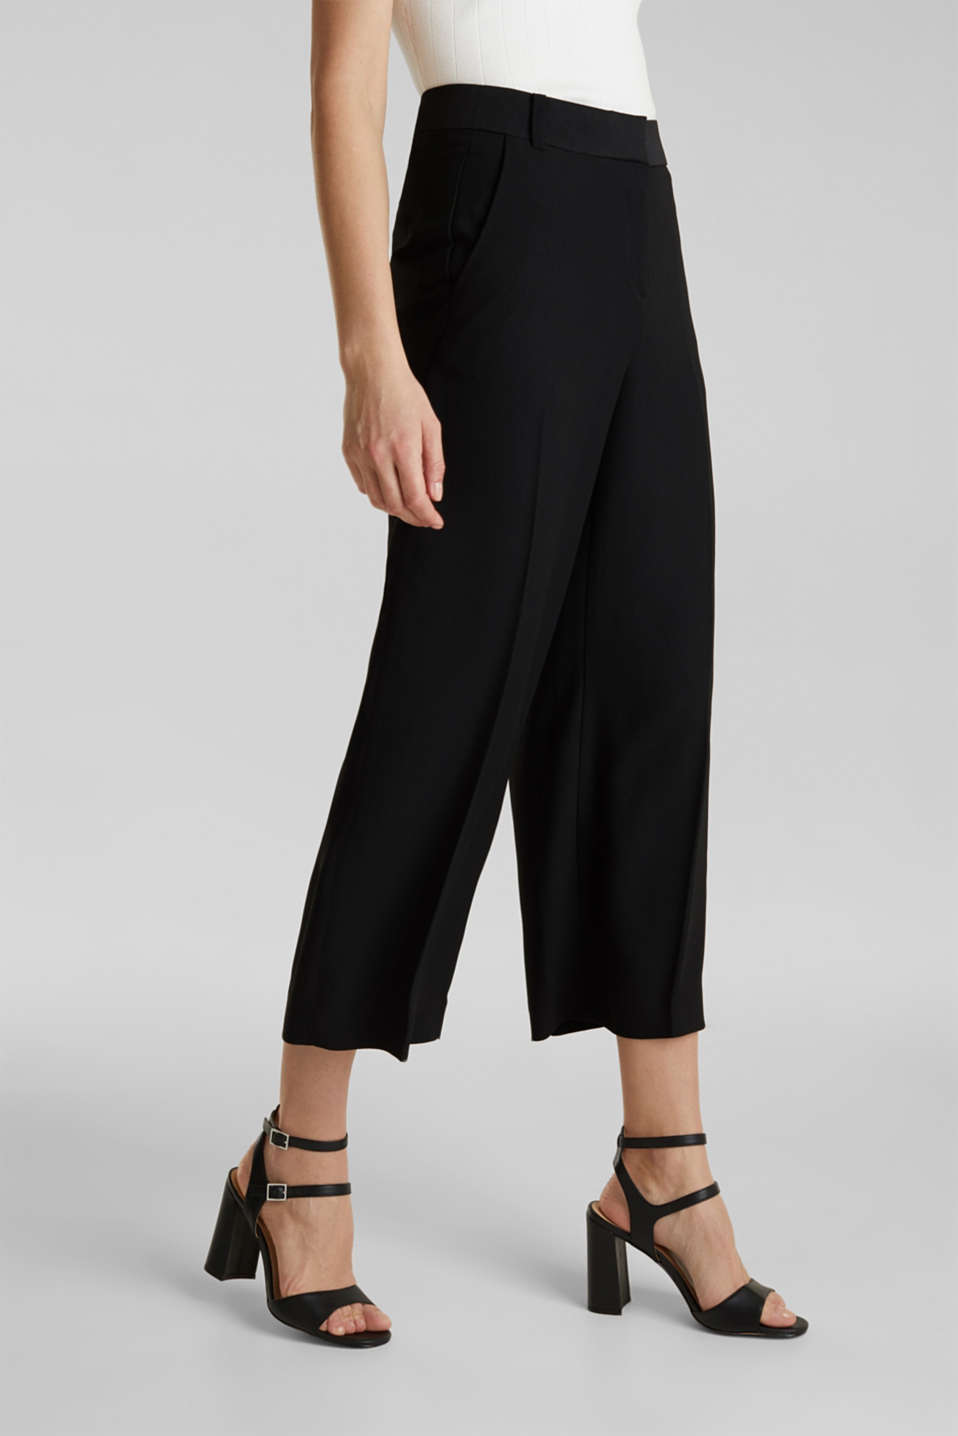 Esprit - MATT & SHINE Mix + Match culotte